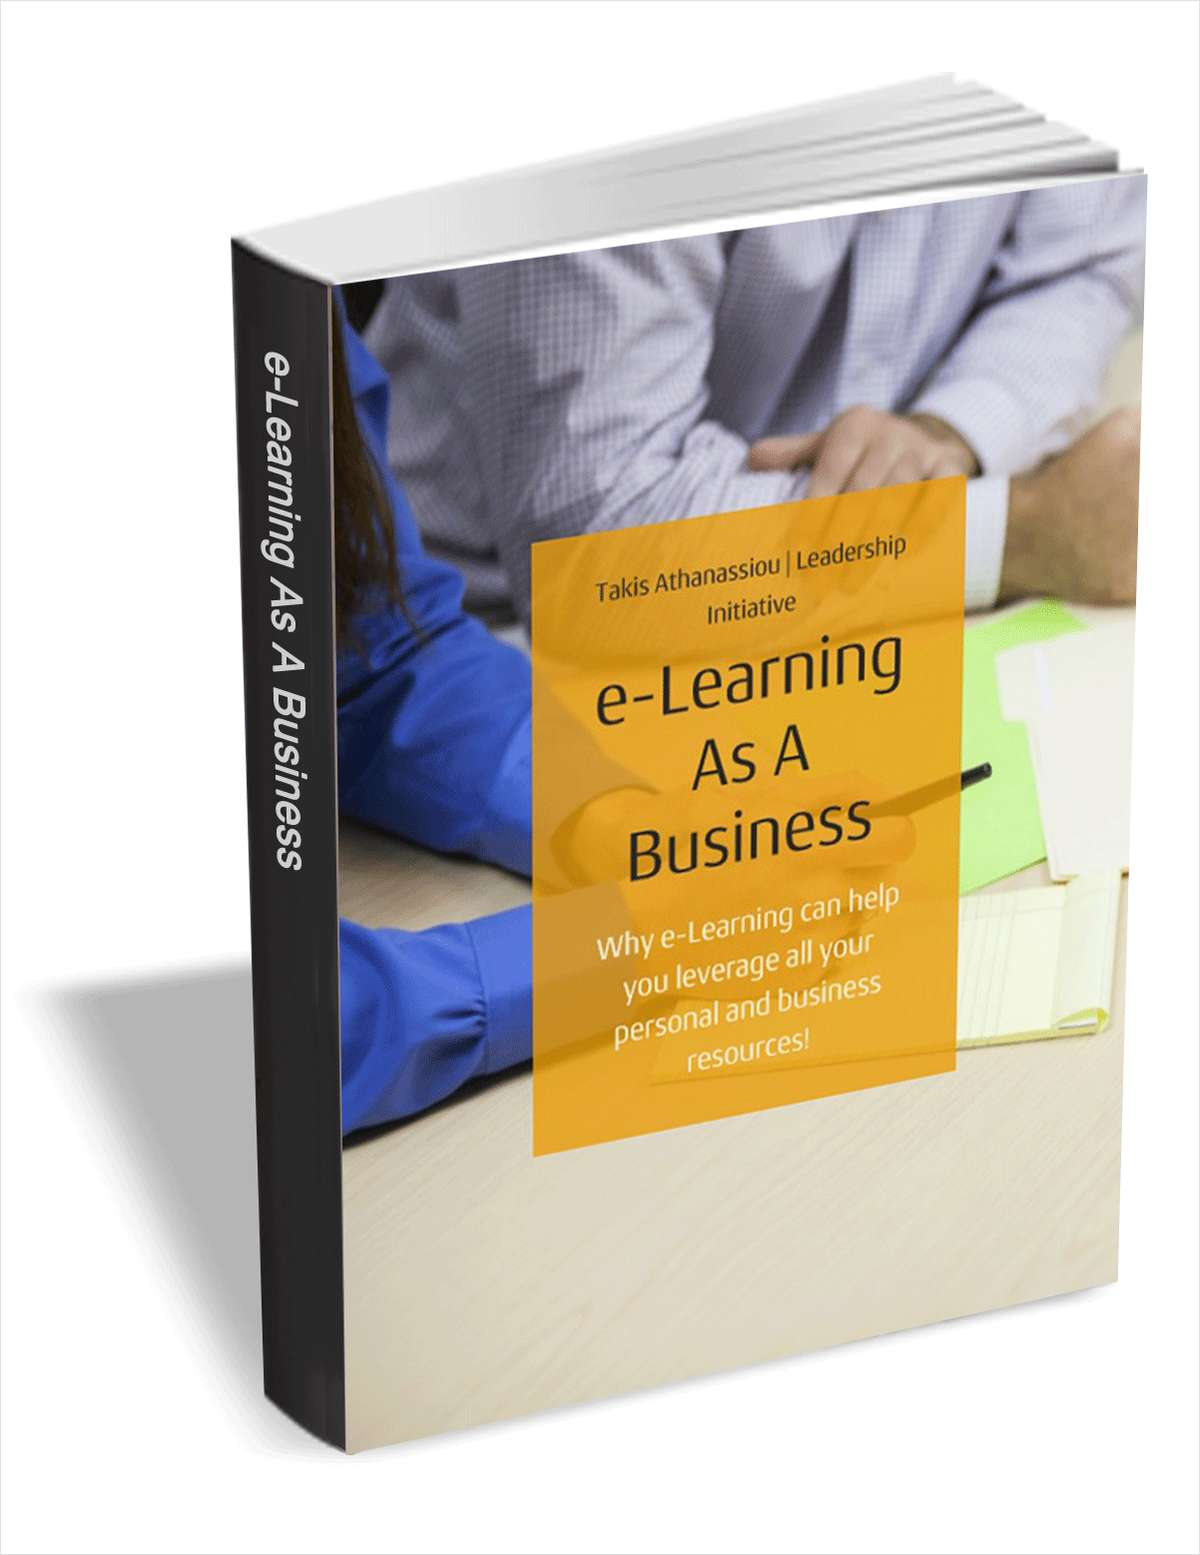 e-Learning As A Business